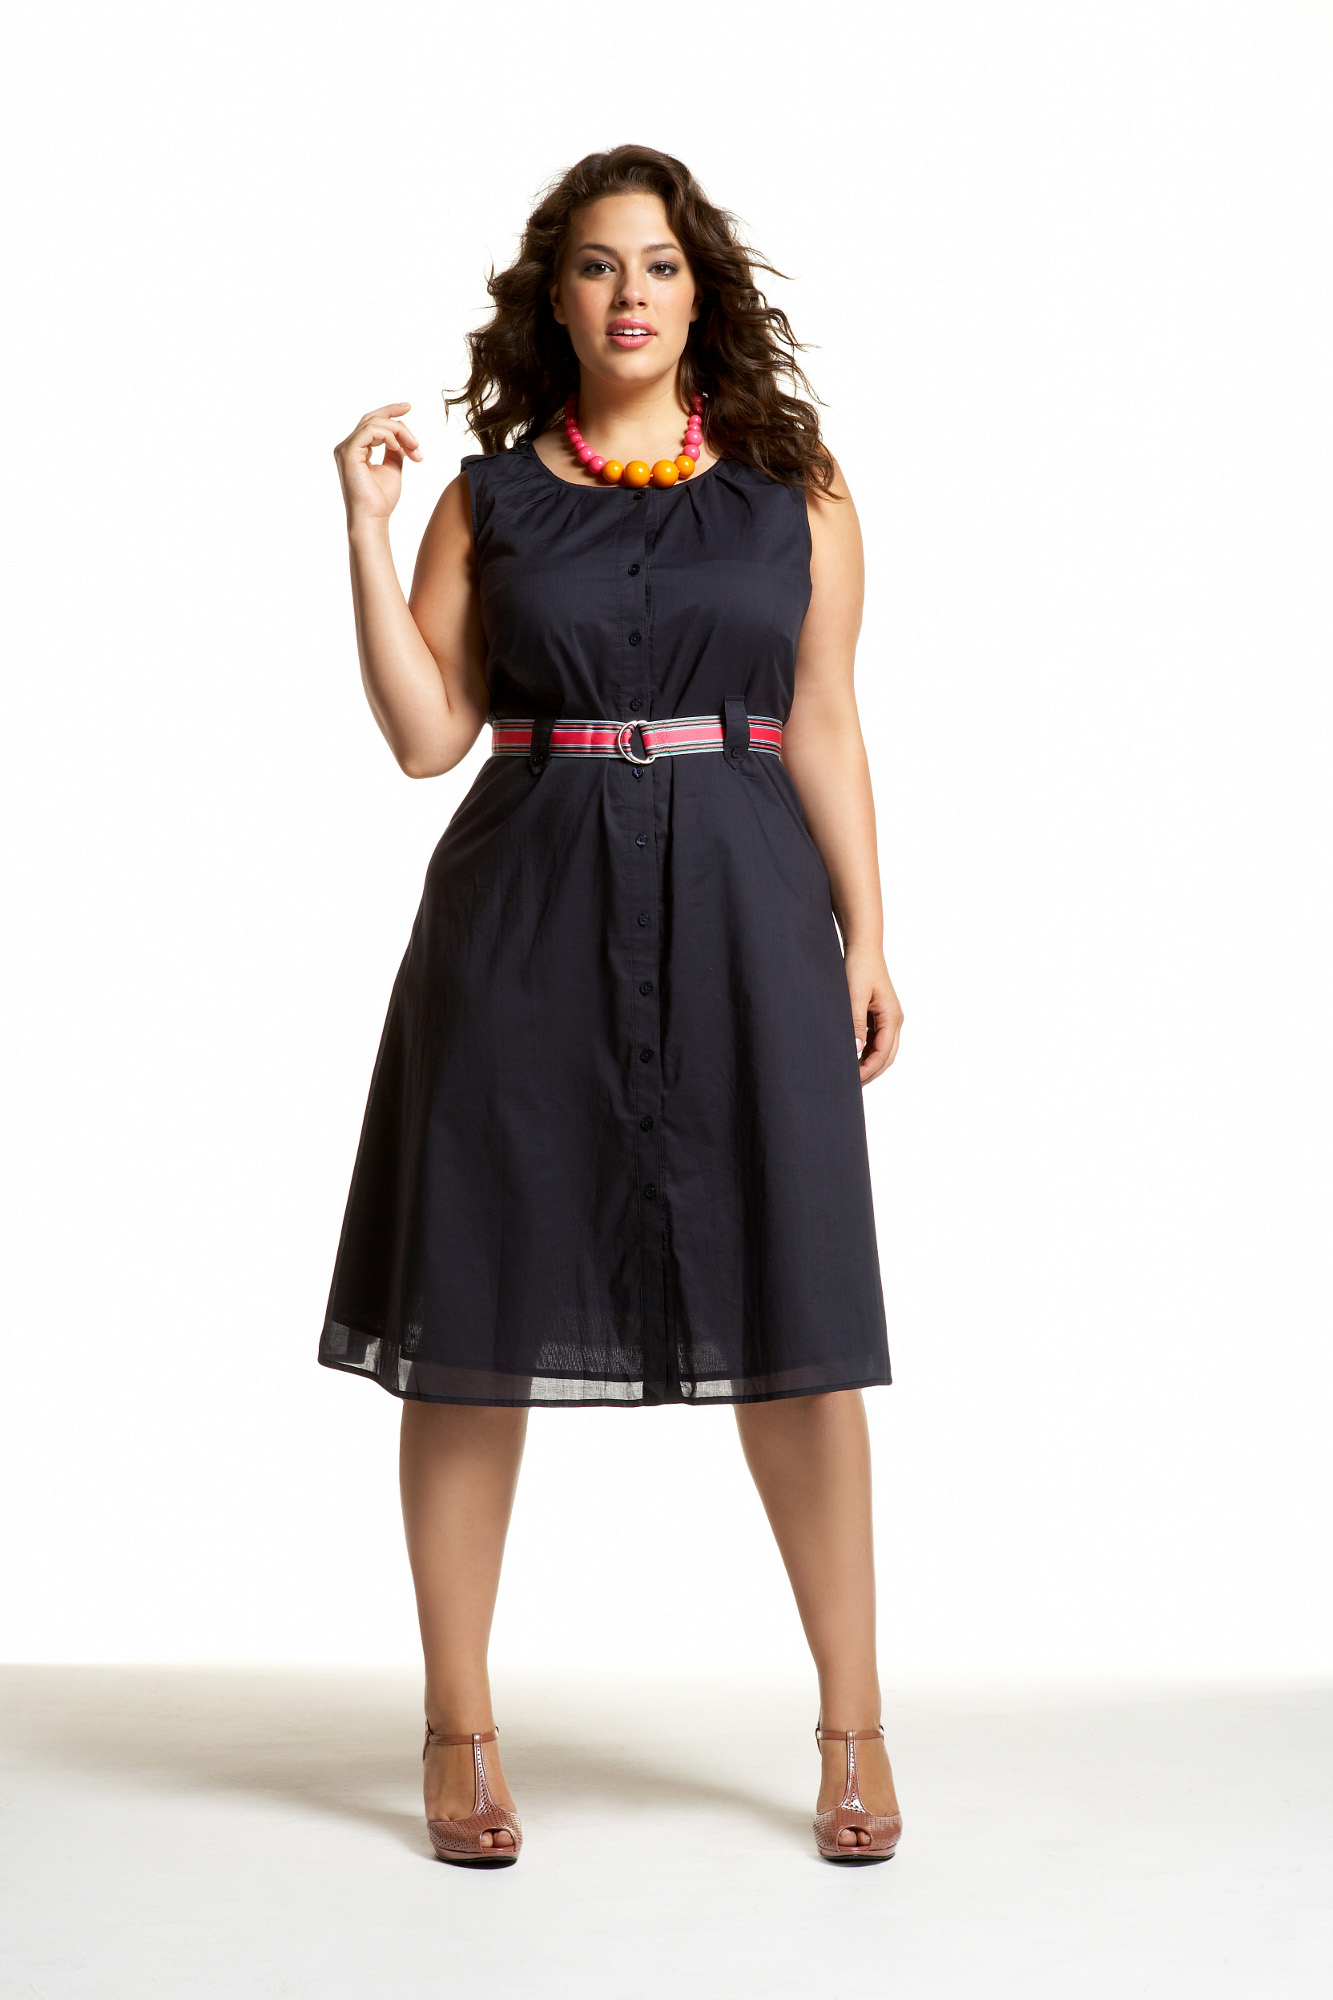 women's plus size dress coats : beautiful and elegant - dresses ask